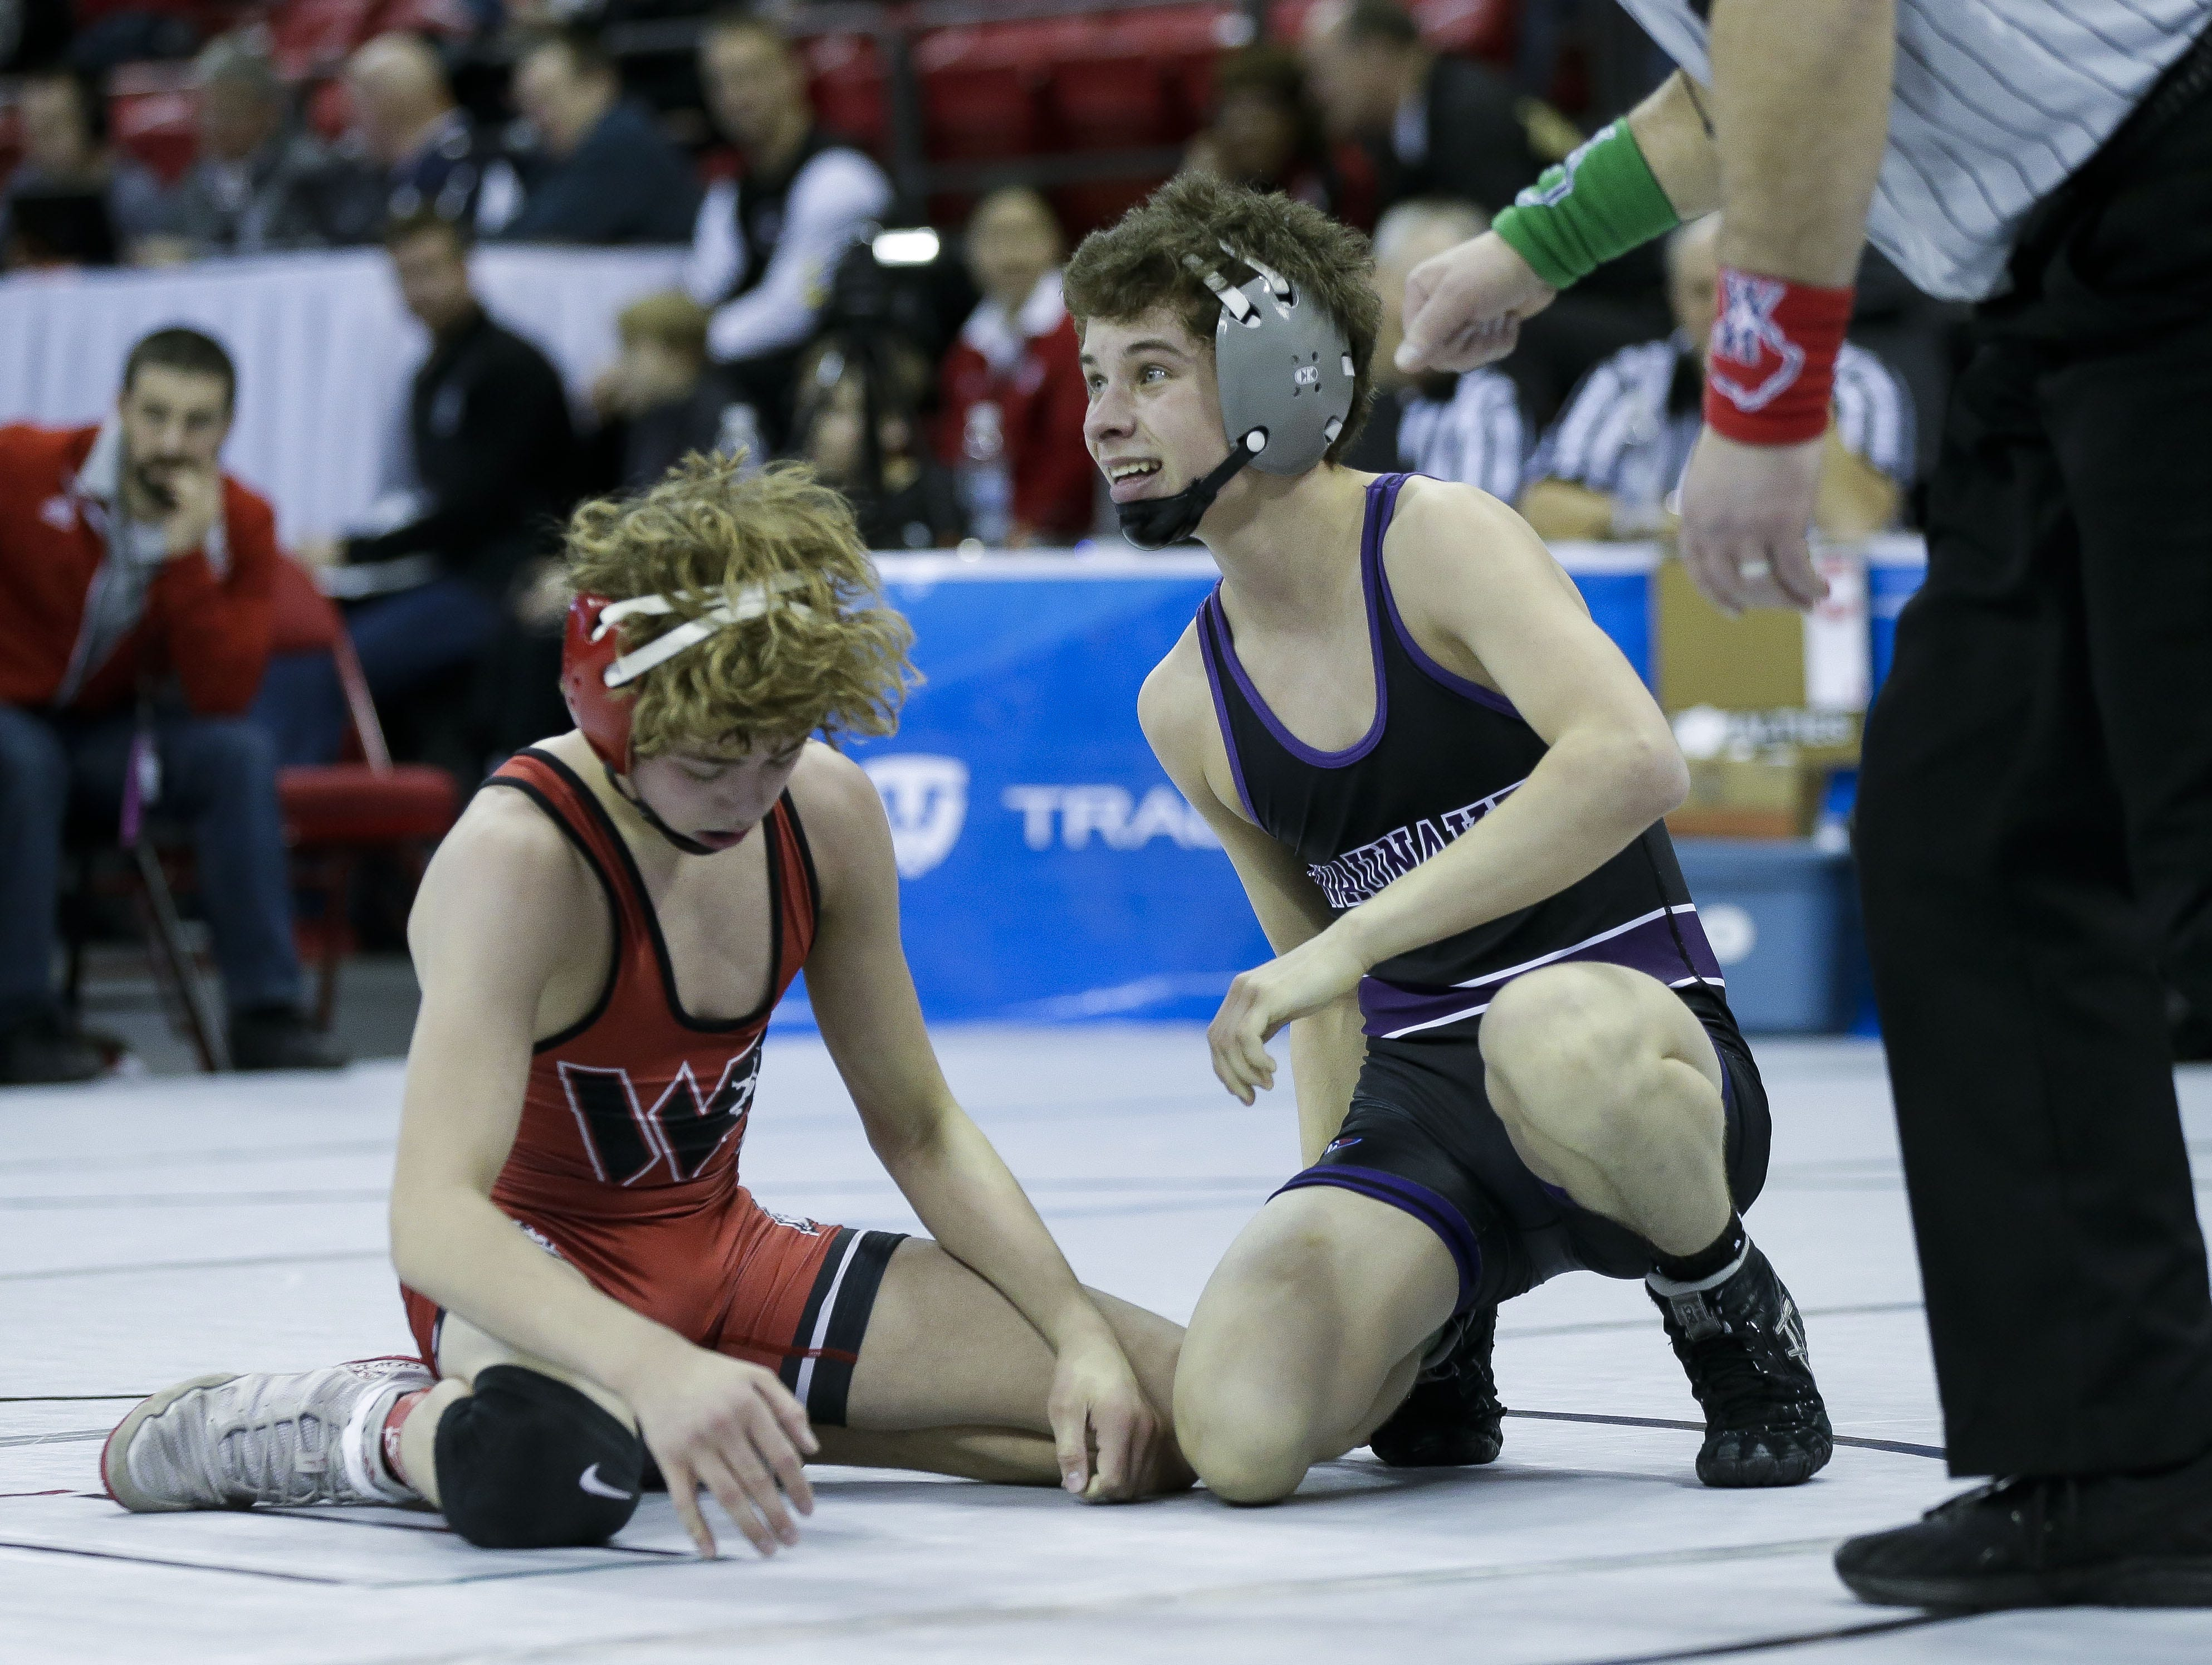 Waunakee's Kolby Heinz reacts after beating Wisconsin Rapids' Preston Spray in a Division 1 106-pound preliminary match during the WIAA state wrestling tournament on Thursday, February 21, 2019, at the Kohl Center in Madison, Wis. Tork Mason/USA TODAY NETWORK-Wisconsin